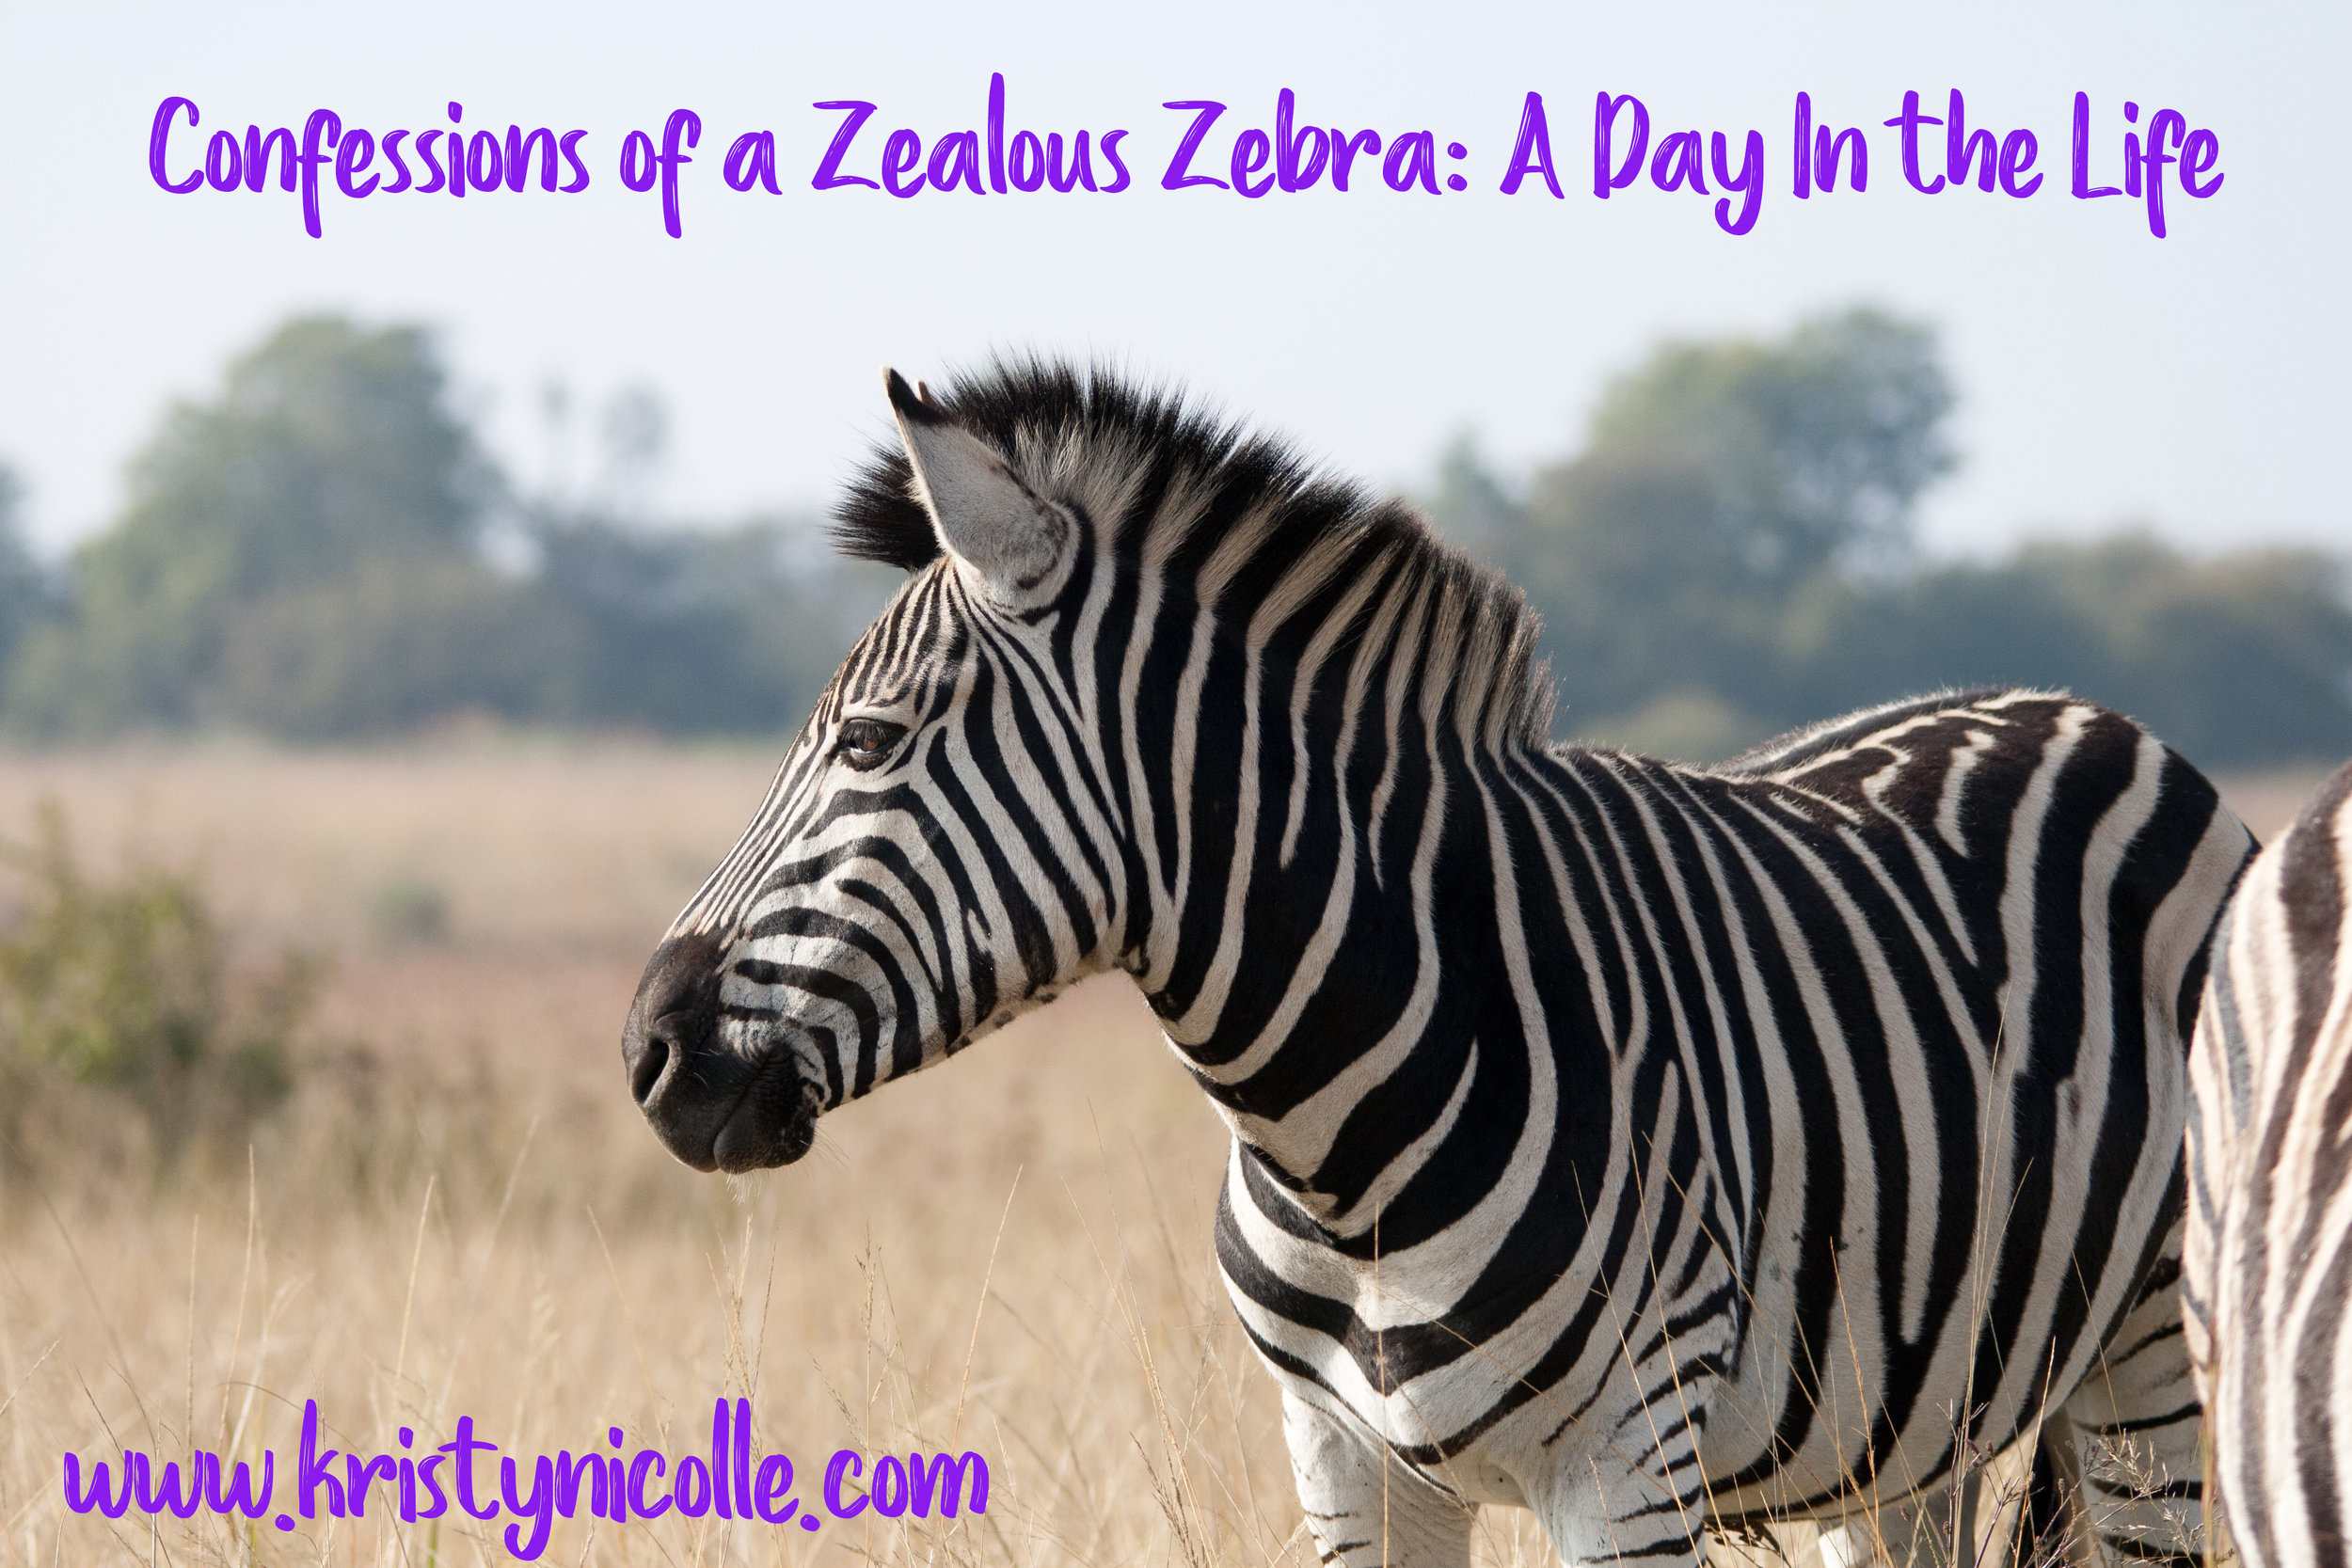 A day in the life- Kristy Nicolle- Zealous Zebra